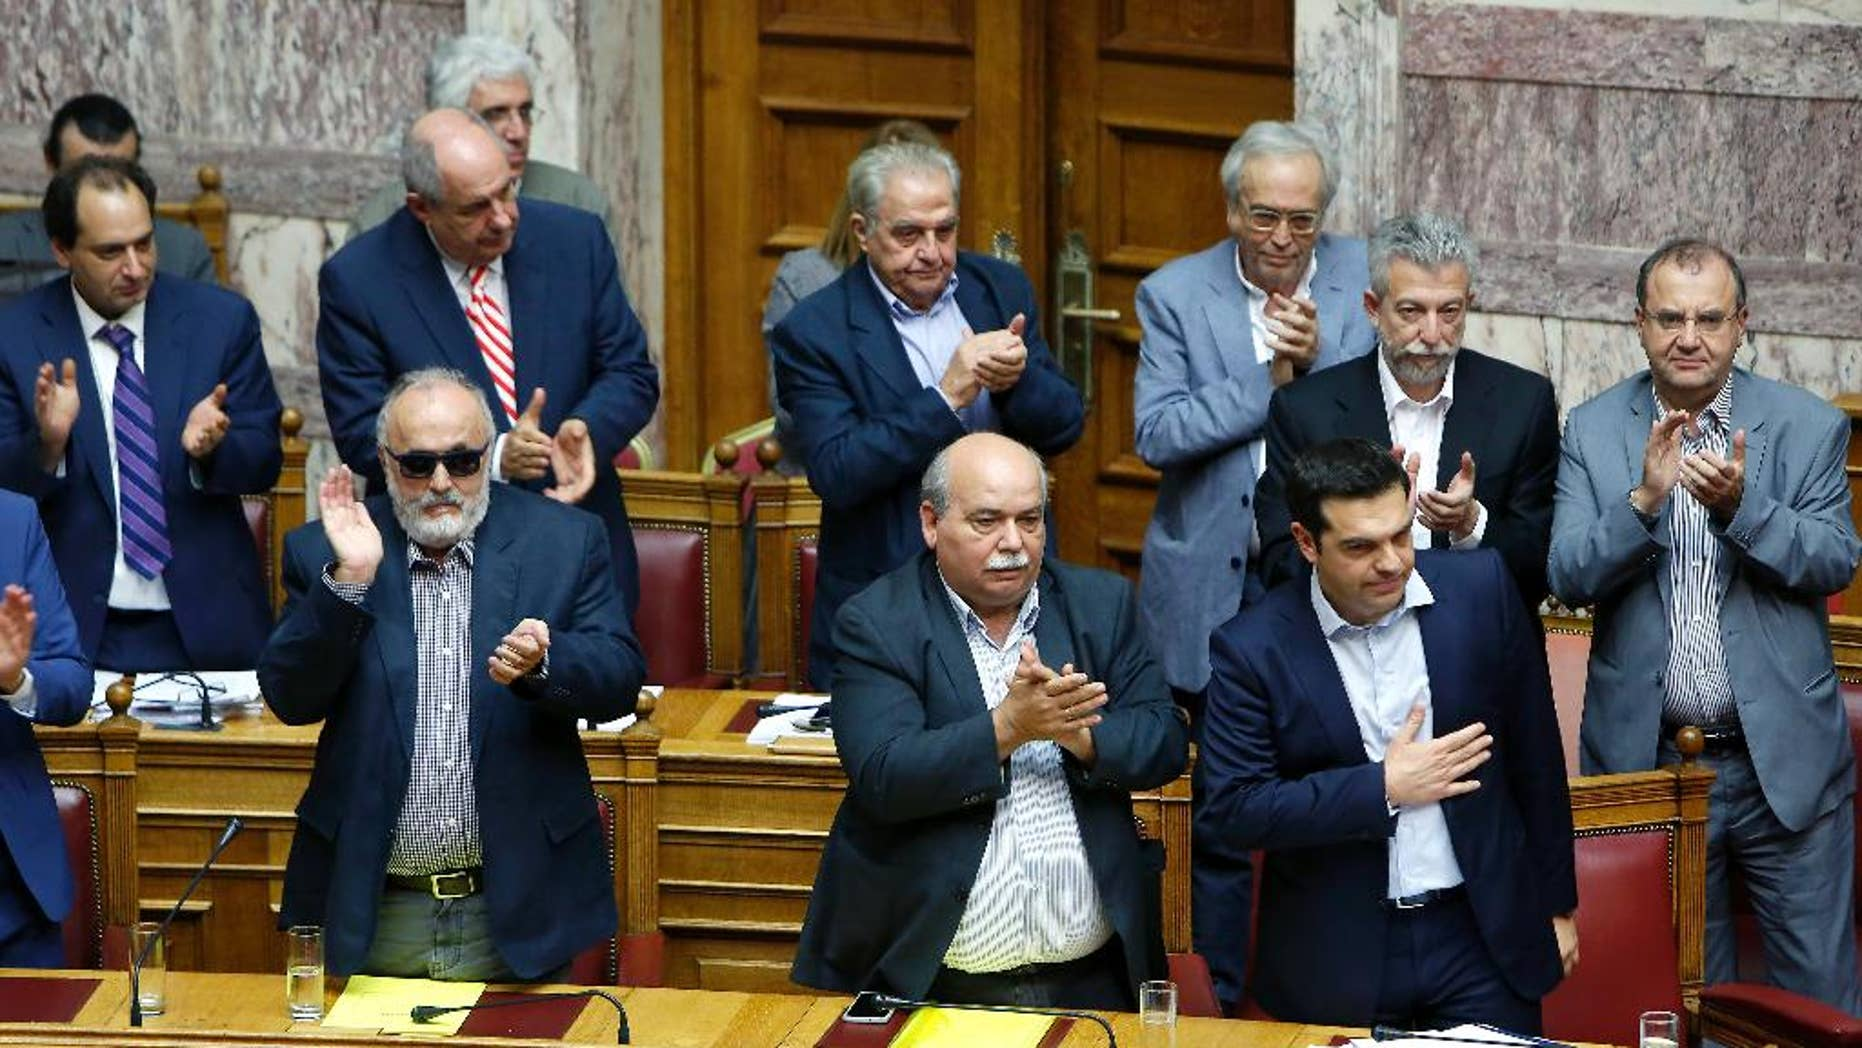 Ministers of Greek government applaud the  Greece's Prime Minister Alexis Tsipras after his speech in an emergency Parliament session for the government's proposed referendum in Athens, Saturday, June 27, 2015. Greece's place in the euro currency bloc looked increasingly shaky on Saturday, when eurozone countries rejected a monthlong extension to its bailout program and the prime minister called for a risky popular vote on the country's financial future. (AP Photo/Petros Karadjias)